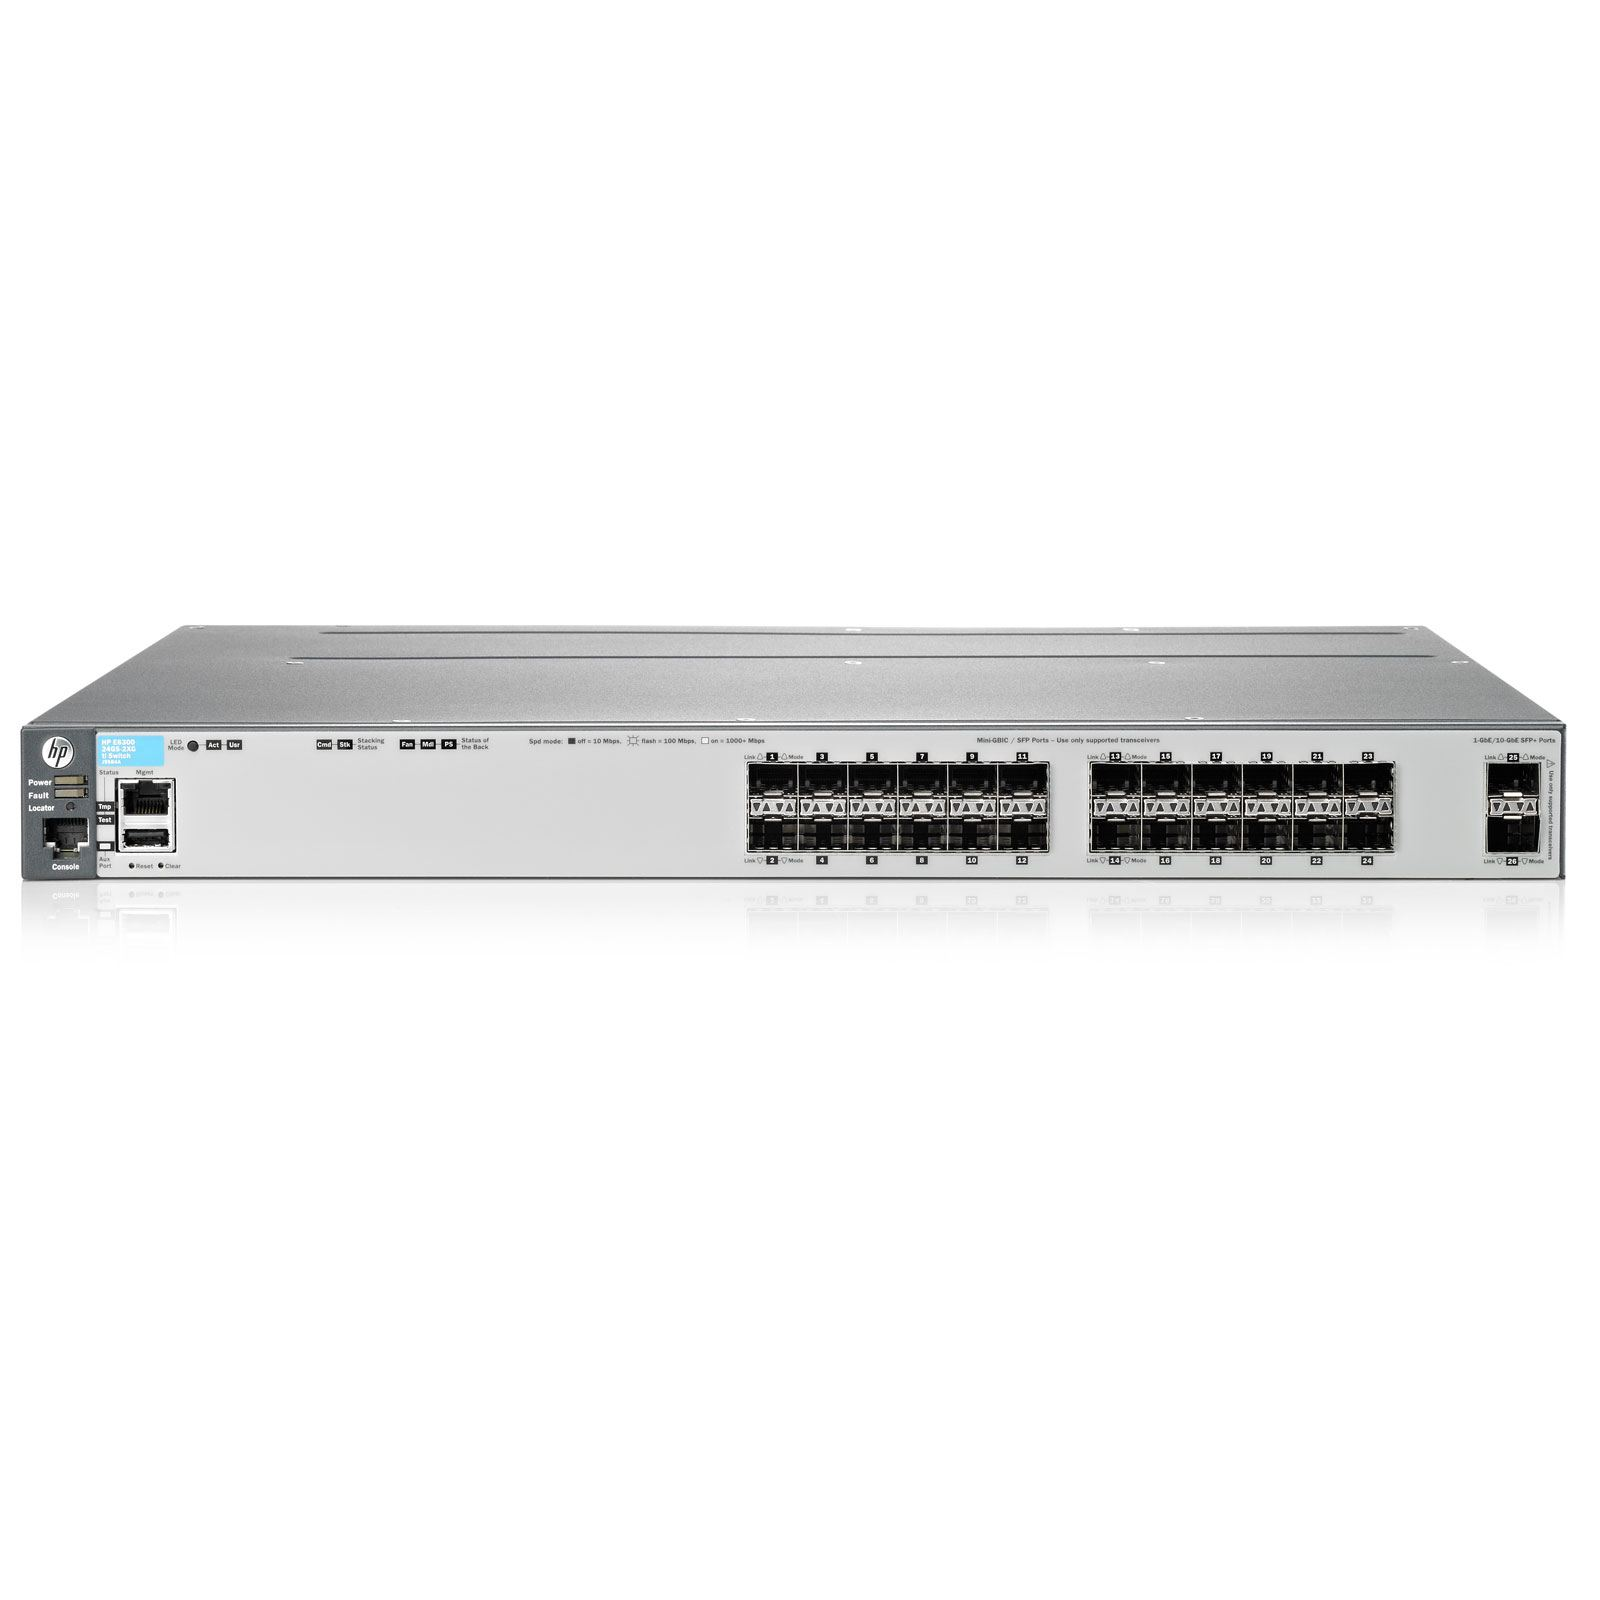 Switch HP 3800-24G-PoE+ -2SFP+ J9573A